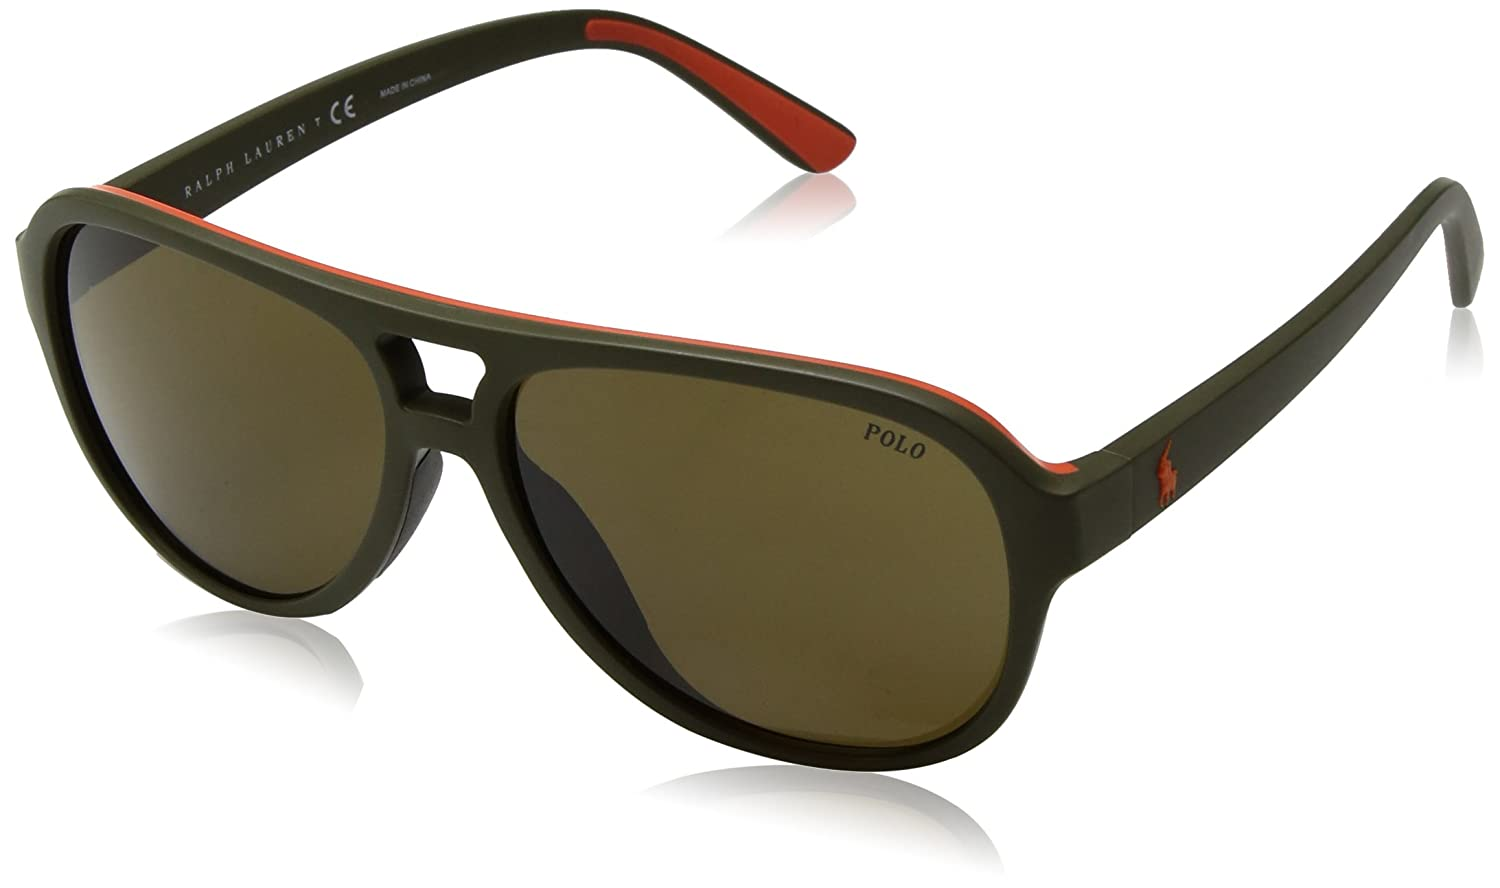 POLO RALPH LAUREN 0PH4123 Gafas de sol, Matte Olive Orange ...